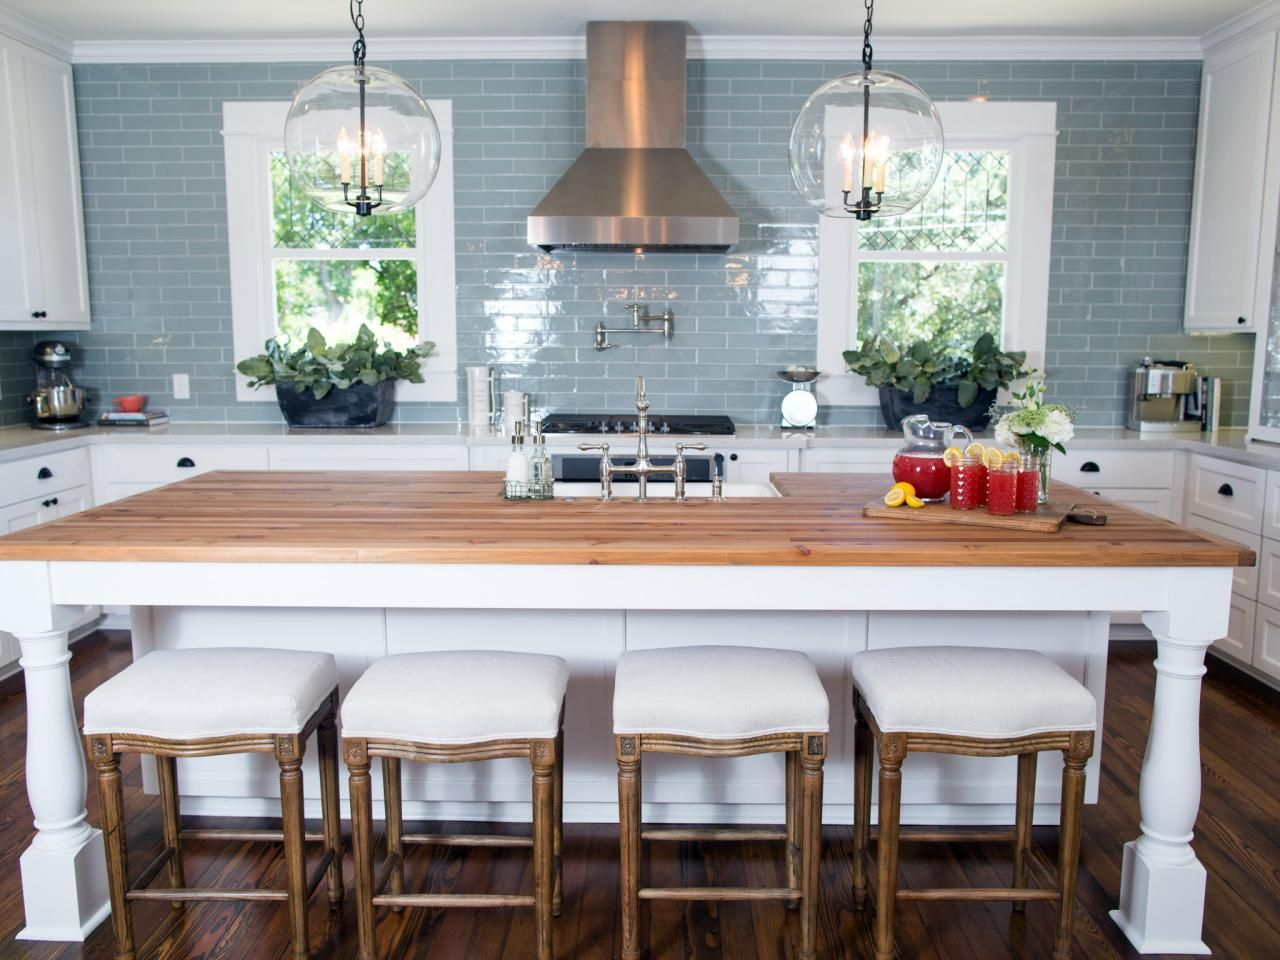 10 Chic Colors That Will Make a Statement in Your Kitchen | New ...